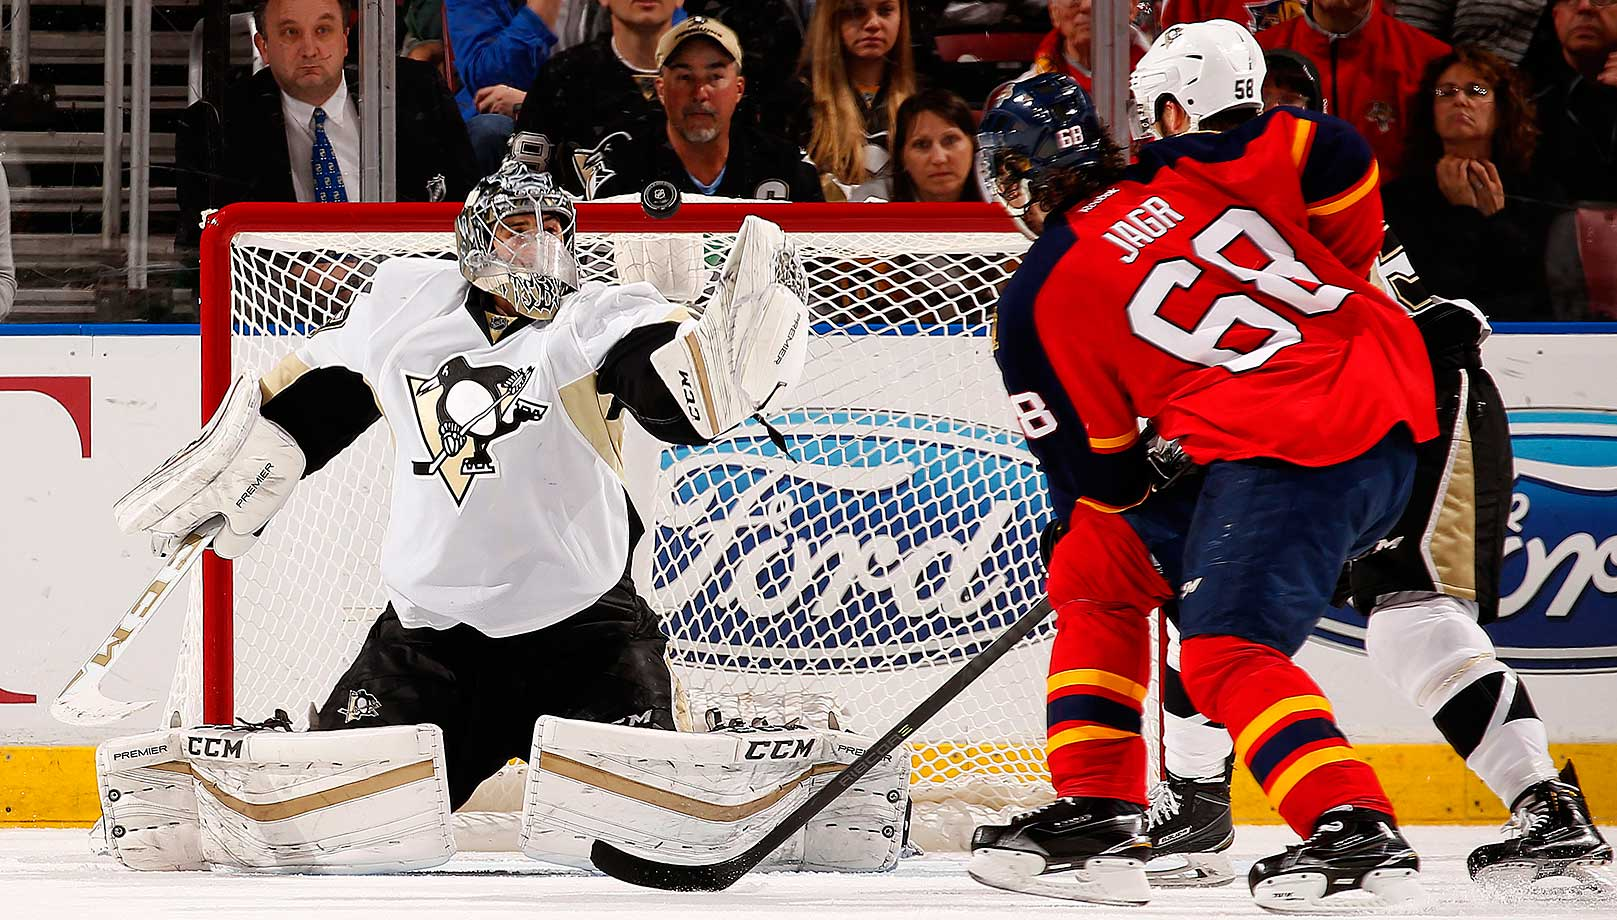 Marc-Andre Fleury of the Pittsburgh Penguins defends the net against Jaromir Jagr.